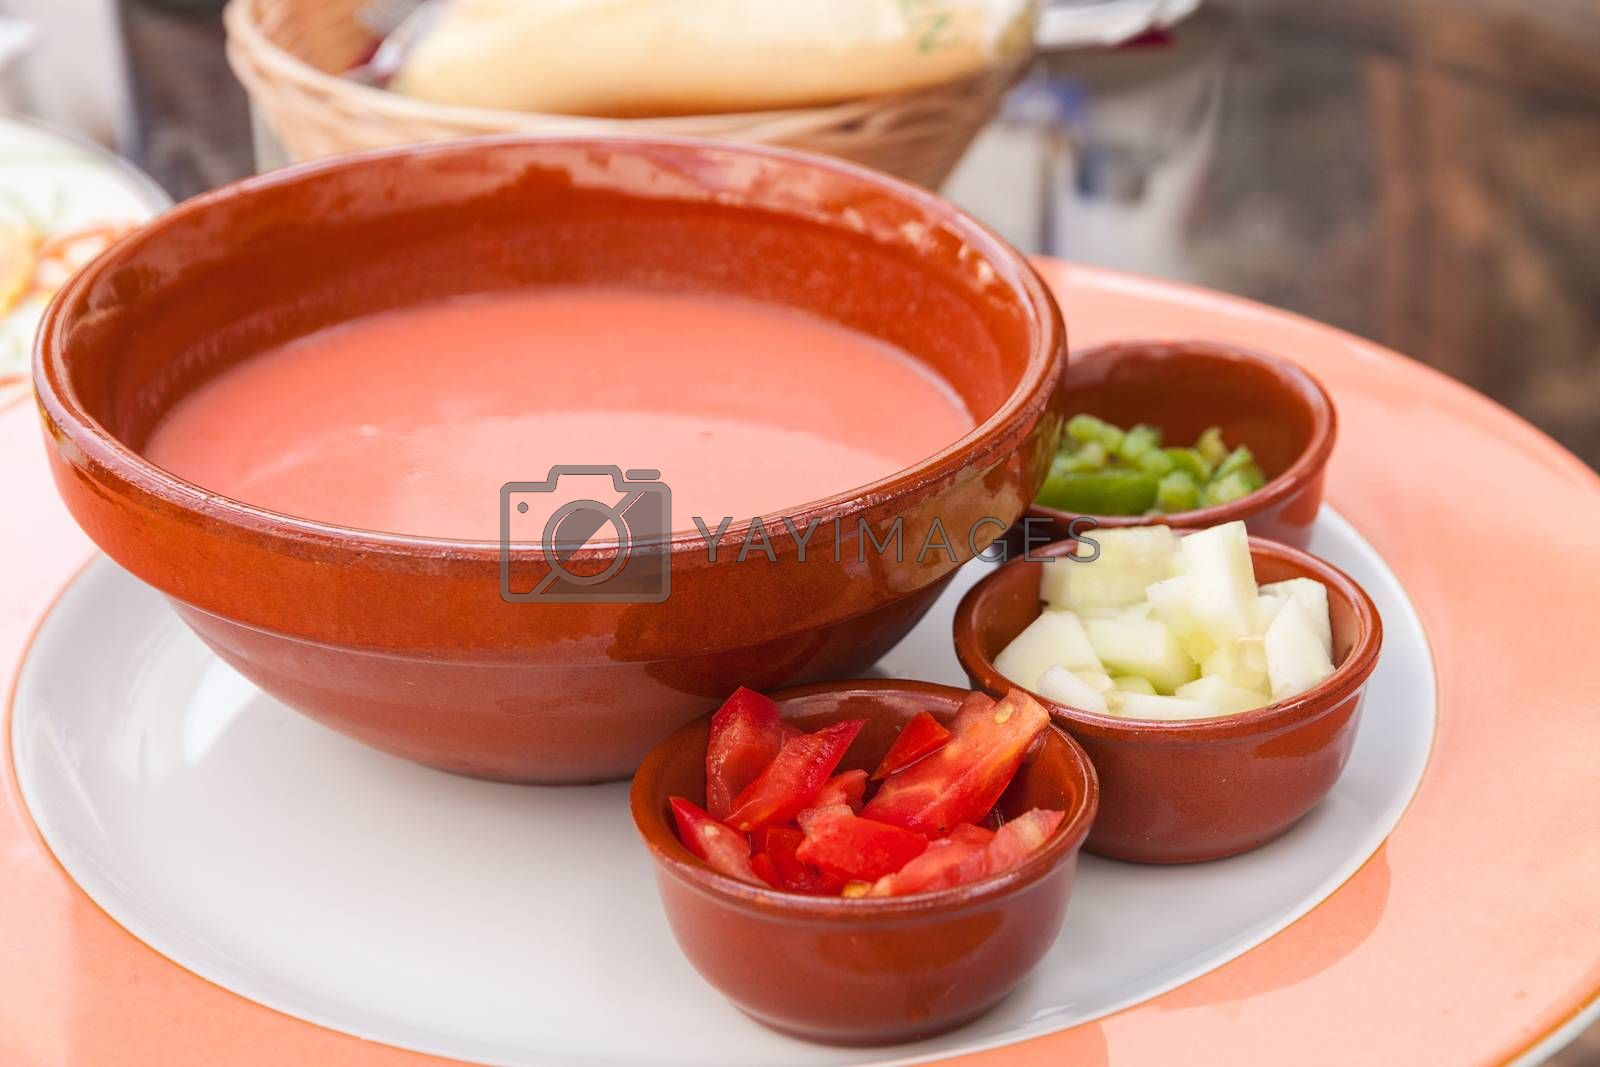 Typical ice-cold and spicy vegetable soup of Andalusia, Spain